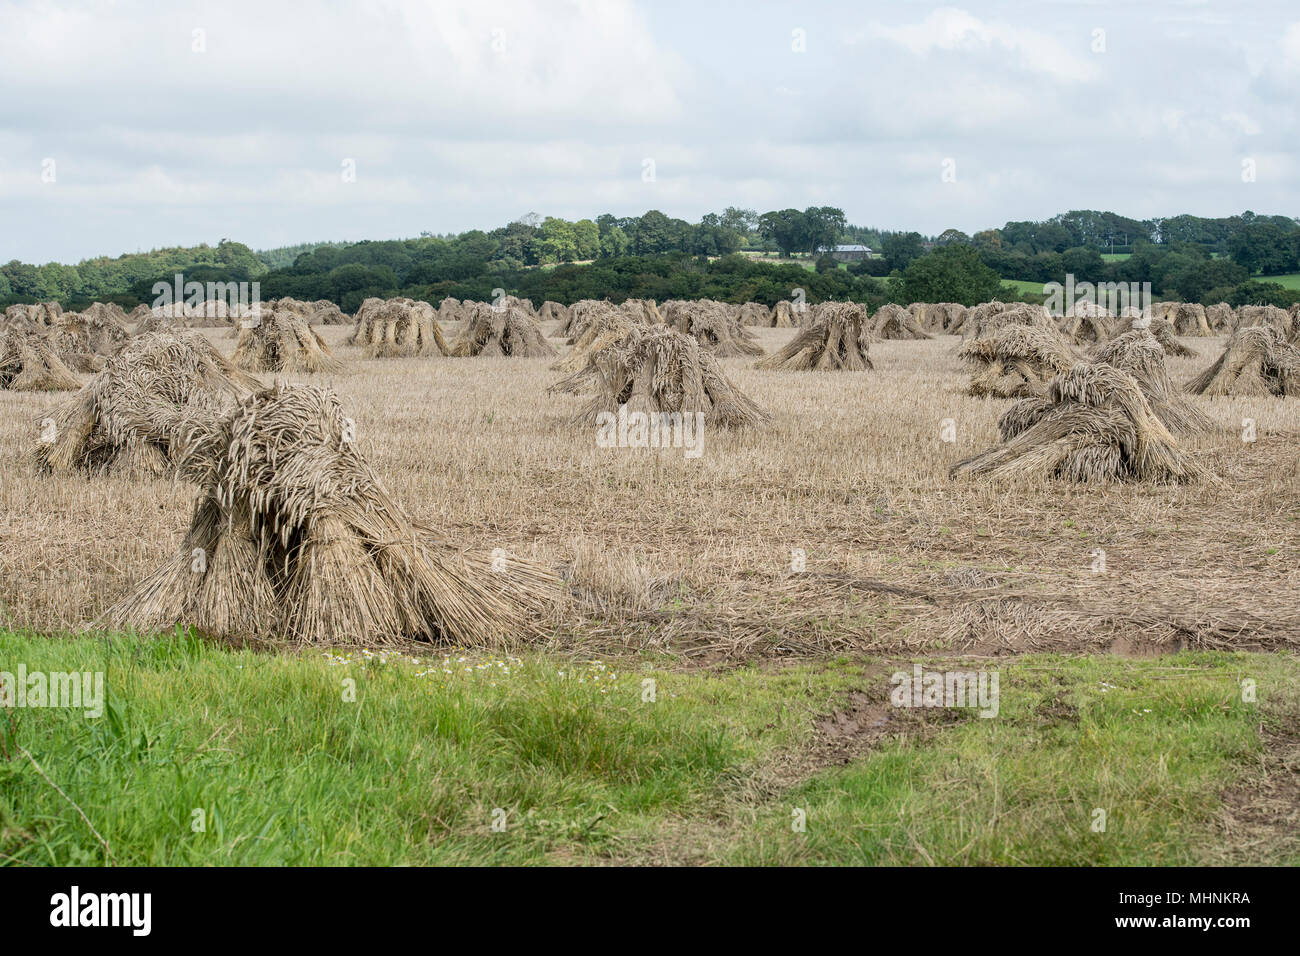 straw being stooked for thatching rooves - Stock Image